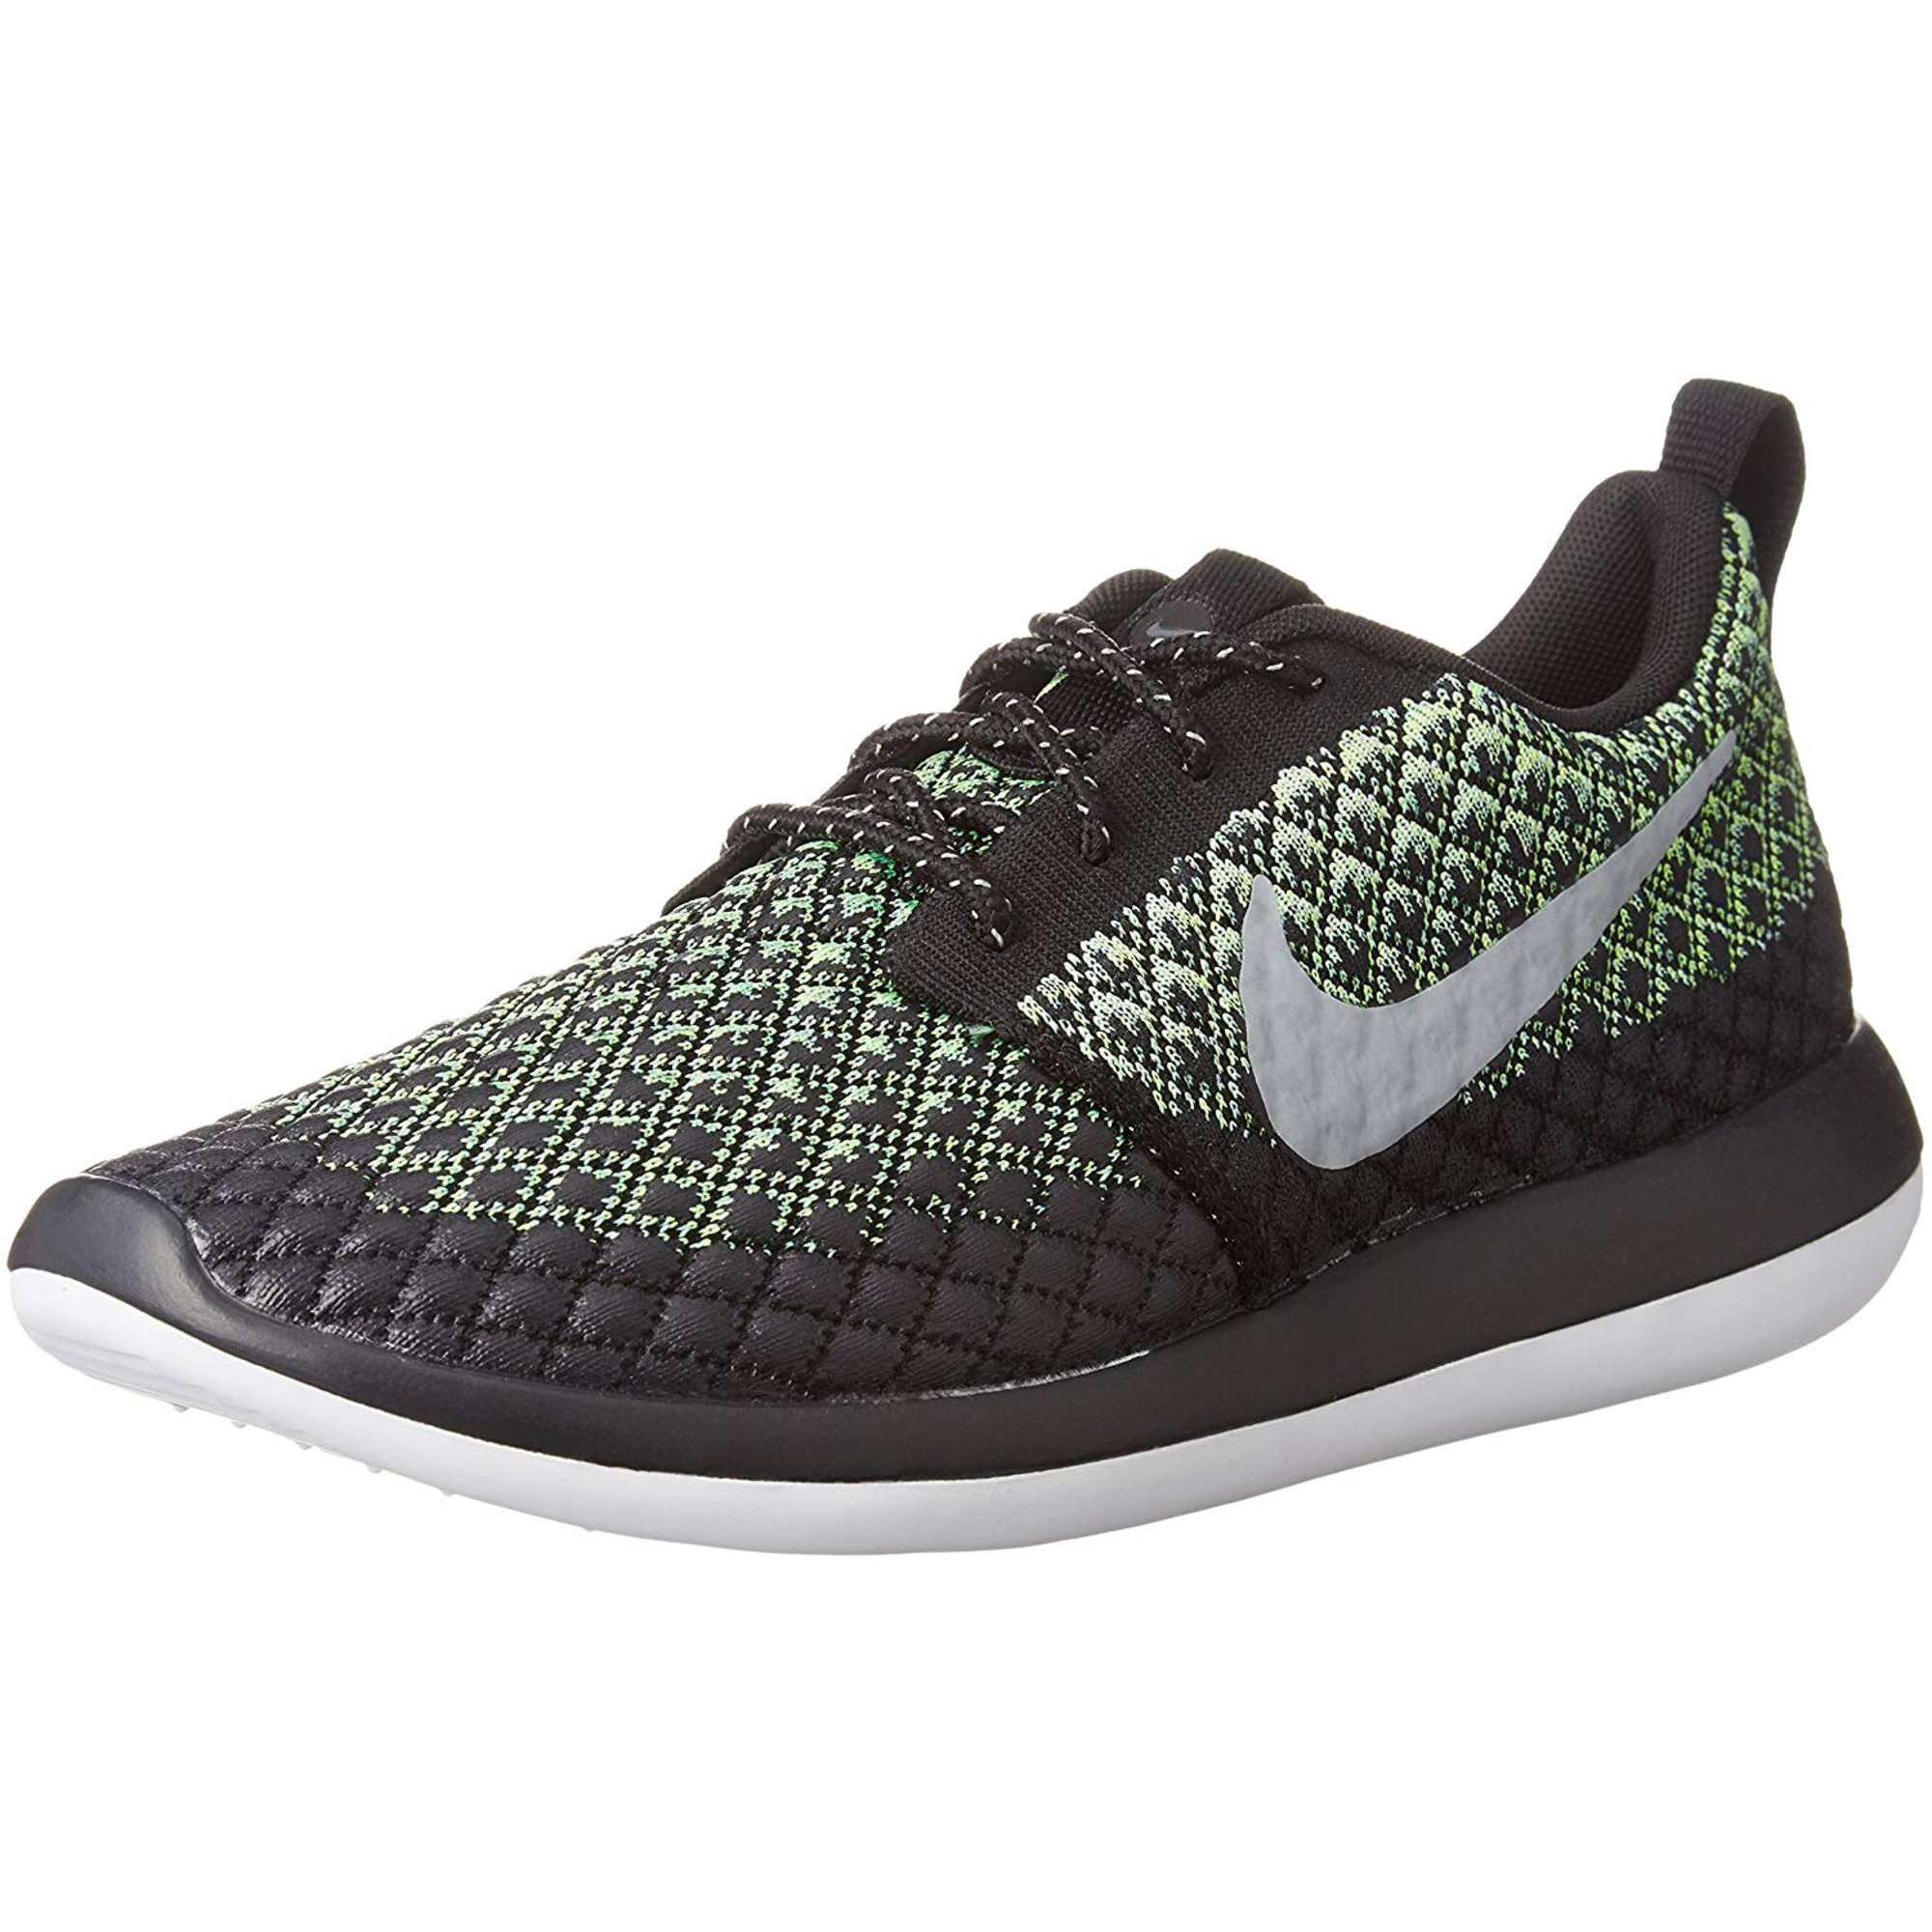 f0d82756b6e4d Nike Mens Roshe Two Flyknit 365 Low Top Lace Up Running Sneaker ...